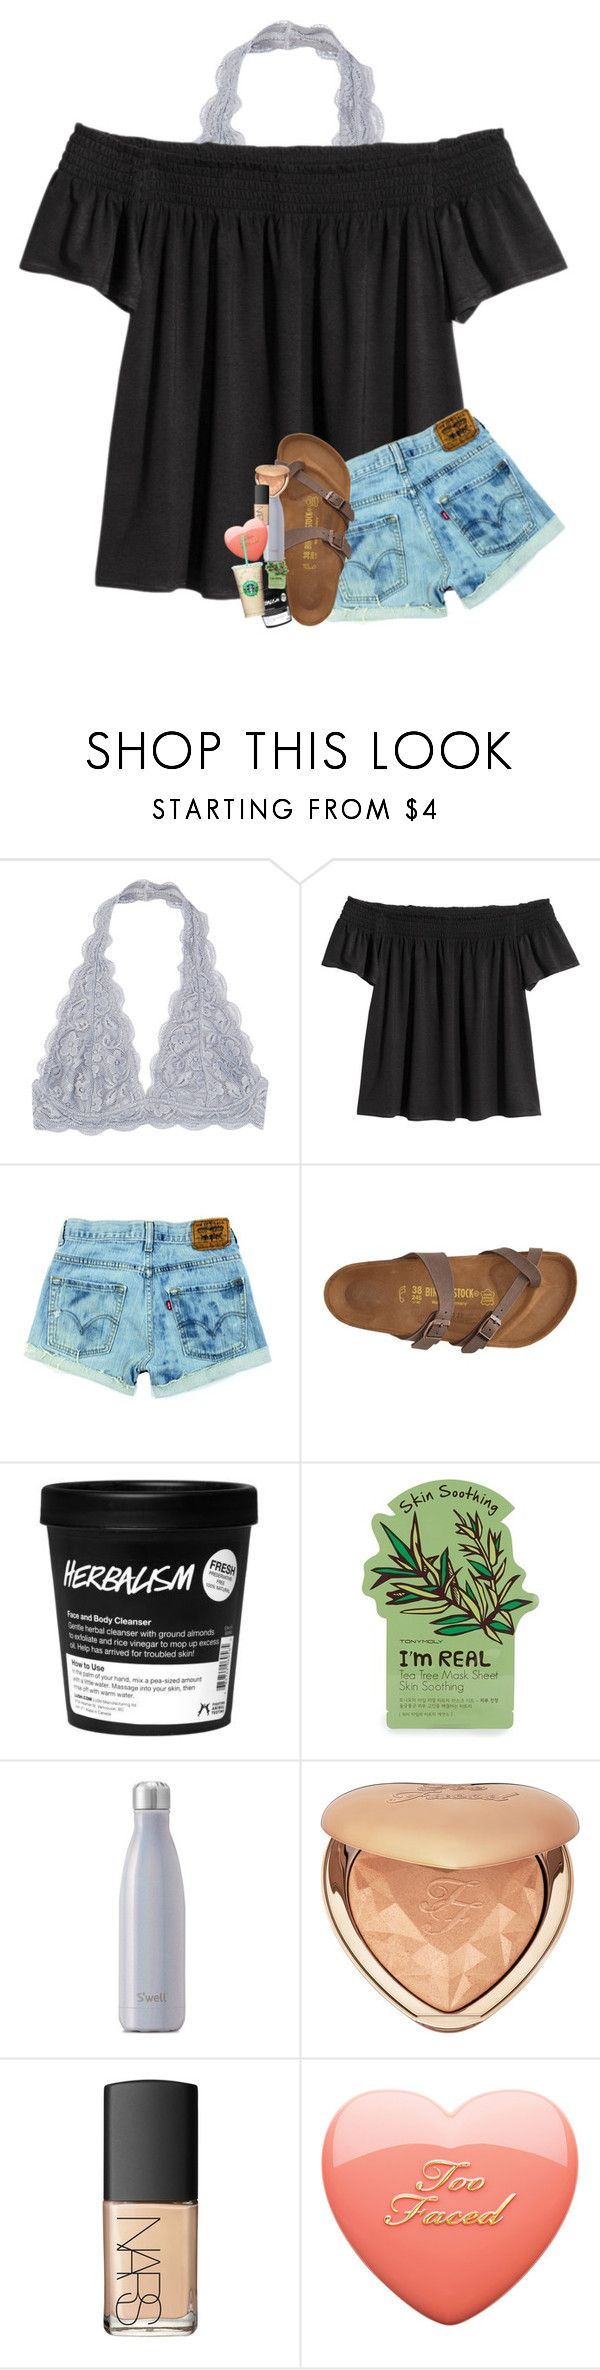 """"" by southernmermaid ❤ liked on Polyvore featuring Birkenstock, Tony Moly, Too Faced Cosmetics and NARS Cosmetics"